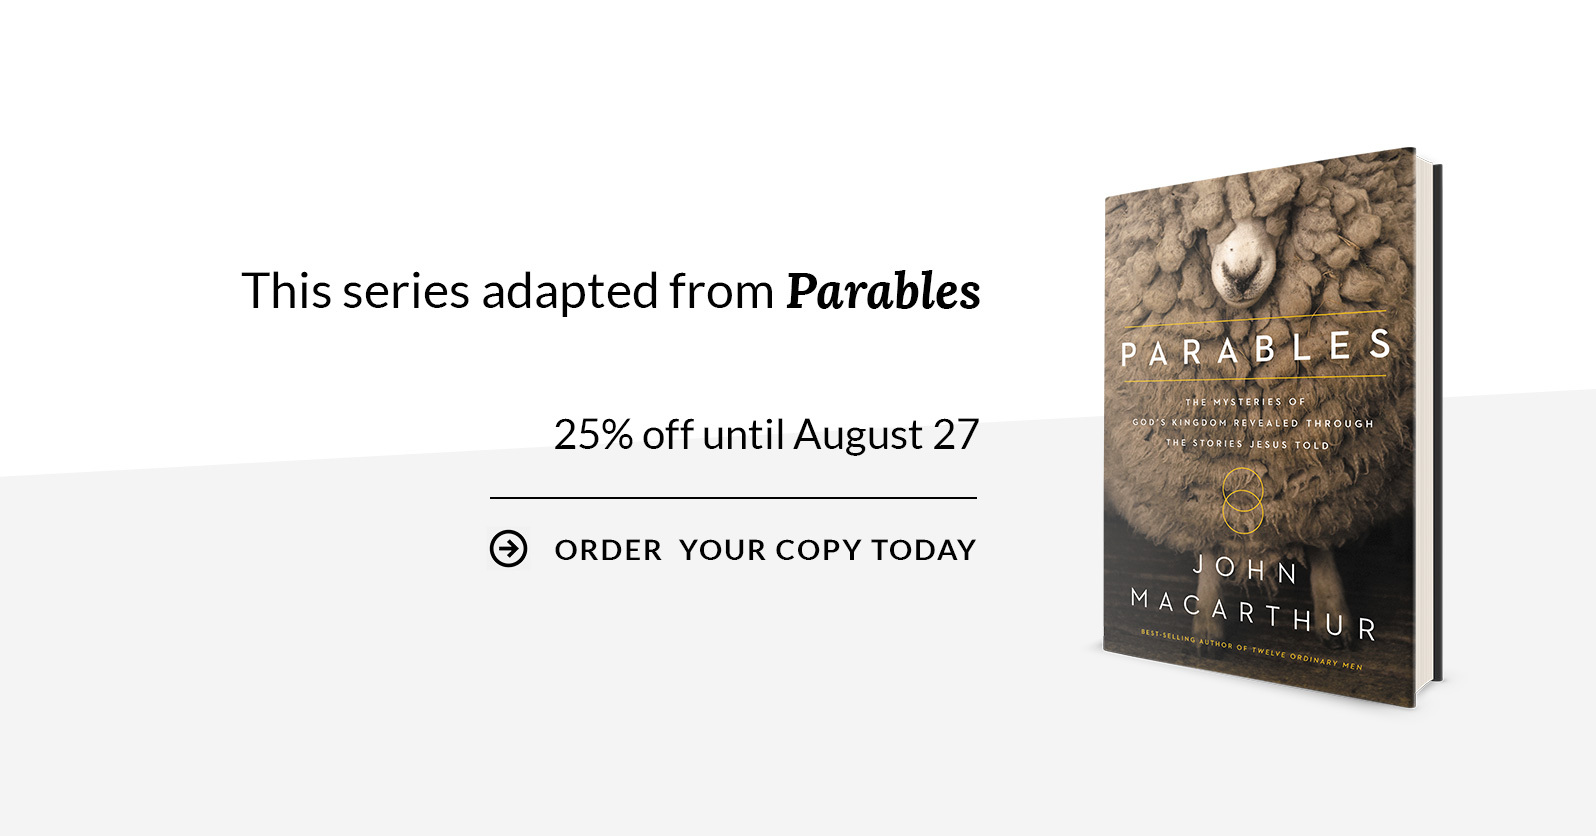 Adaped from John MacArthur's book Parables, on sale now.